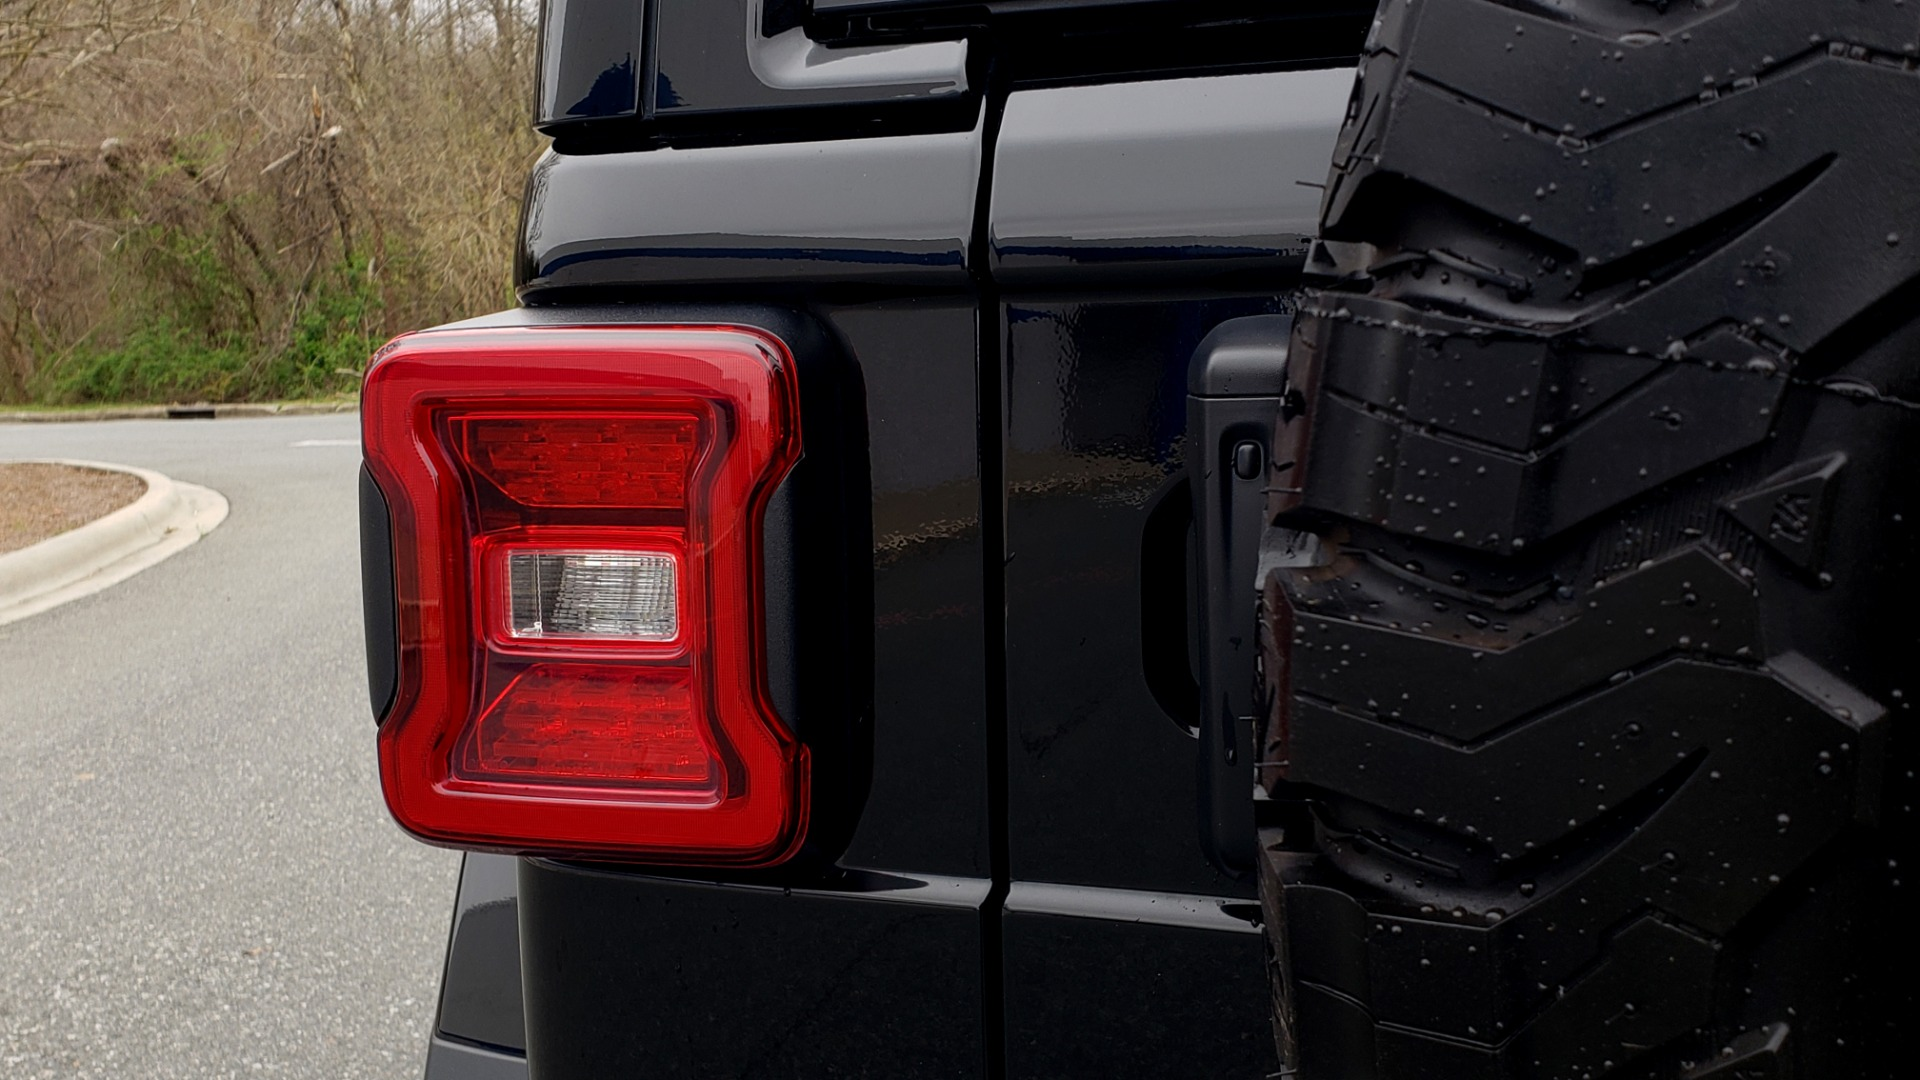 Used 2019 Jeep WRANGLER UNLIMITED RUBICON 4WD / V6 / 8-SPD AUTO / NAV / PWR TOP / REARVIEW for sale Sold at Formula Imports in Charlotte NC 28227 37